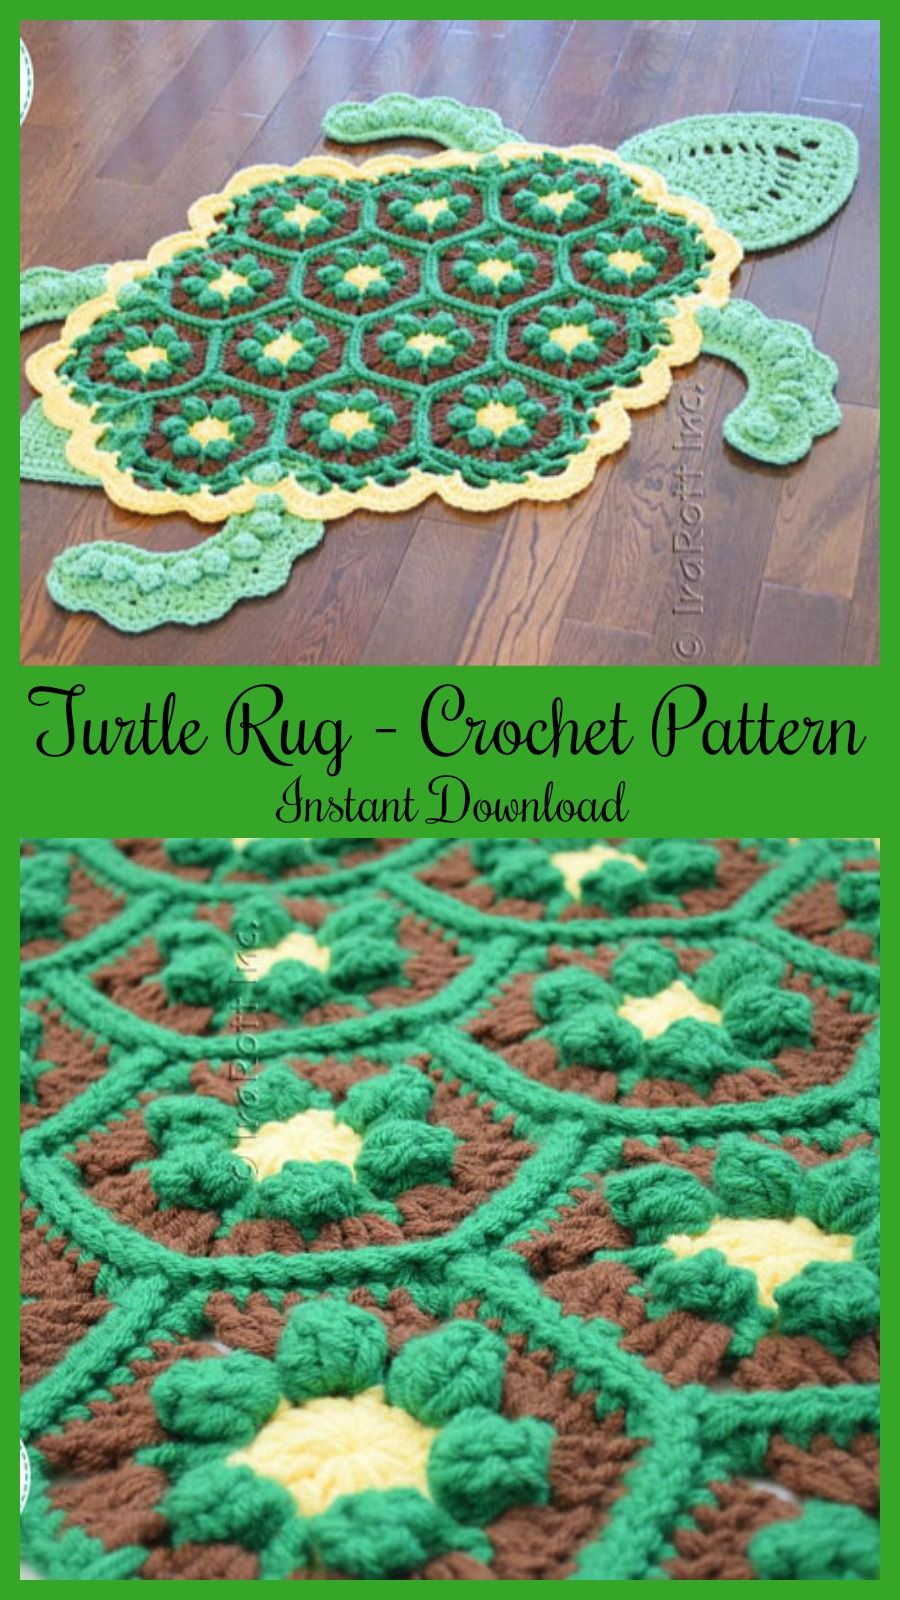 Turtle animal rug crochet pattern found on etsy instant download ad